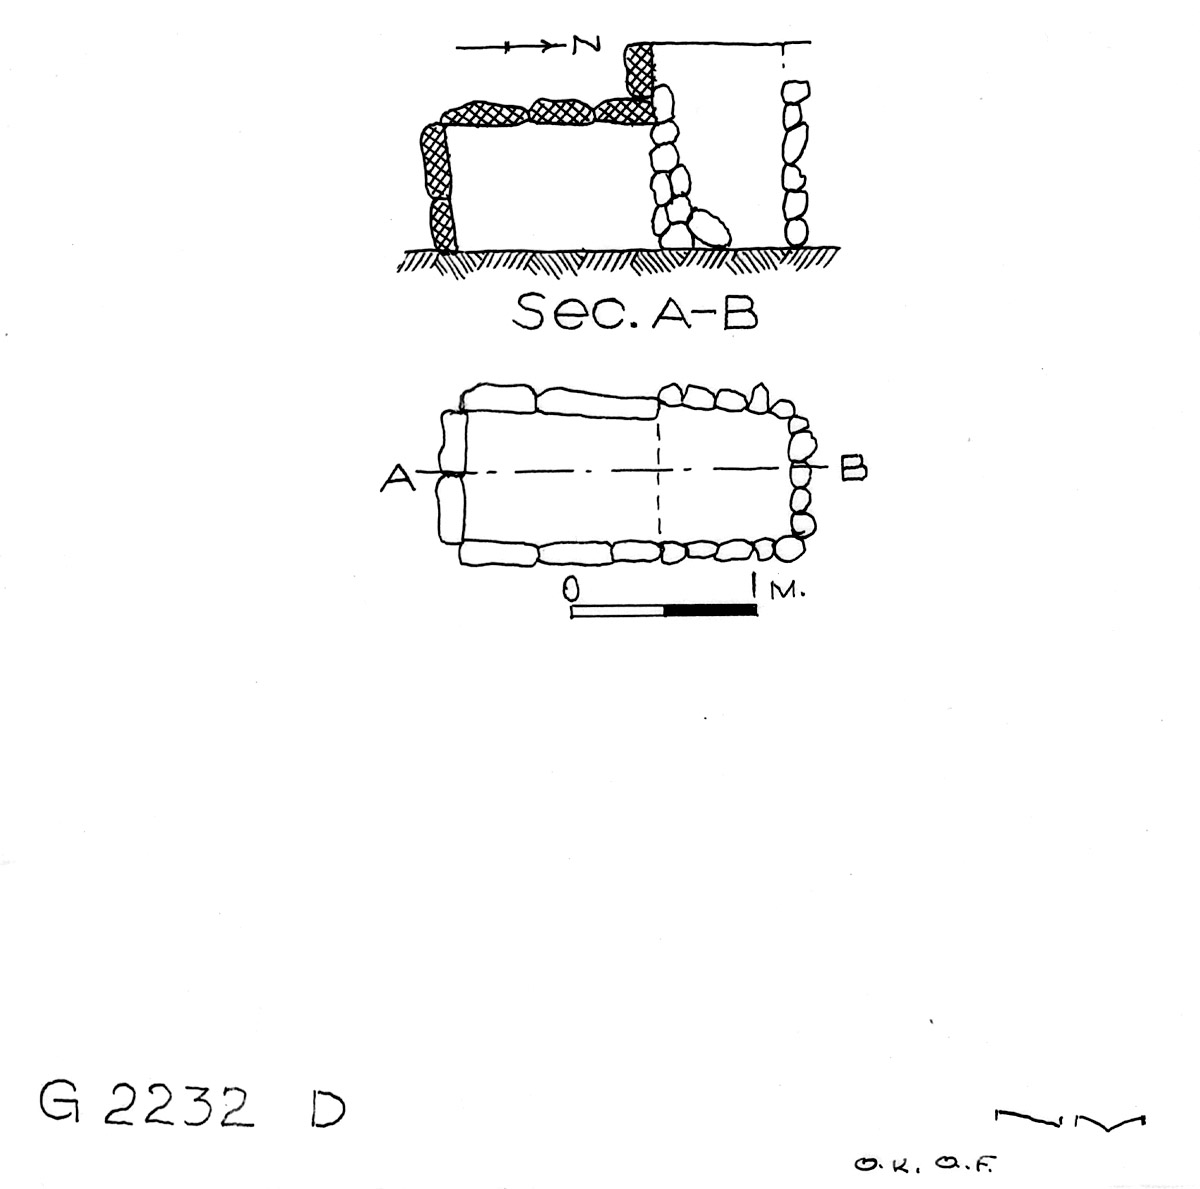 Maps and plans: G 2232, Shaft D